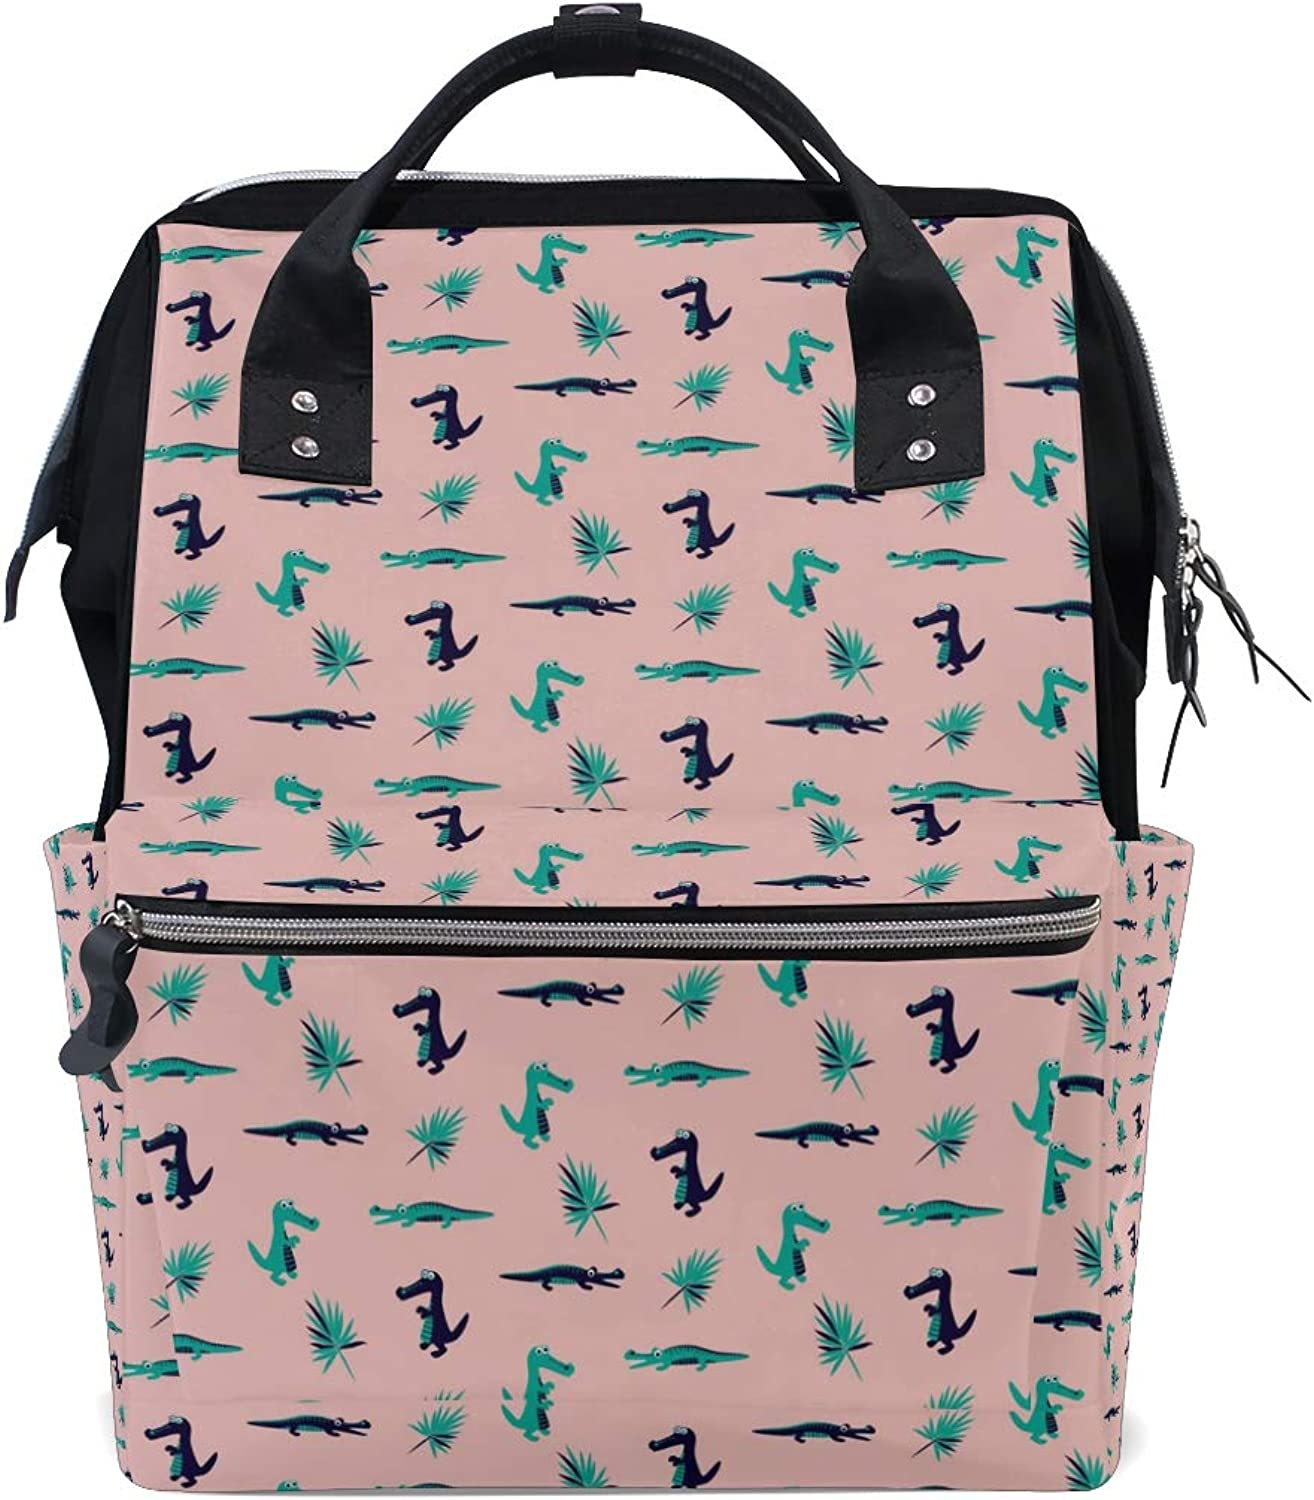 Fashion and Leisure Dinosaur and Croco Backpack Leisure Travel School Backpack